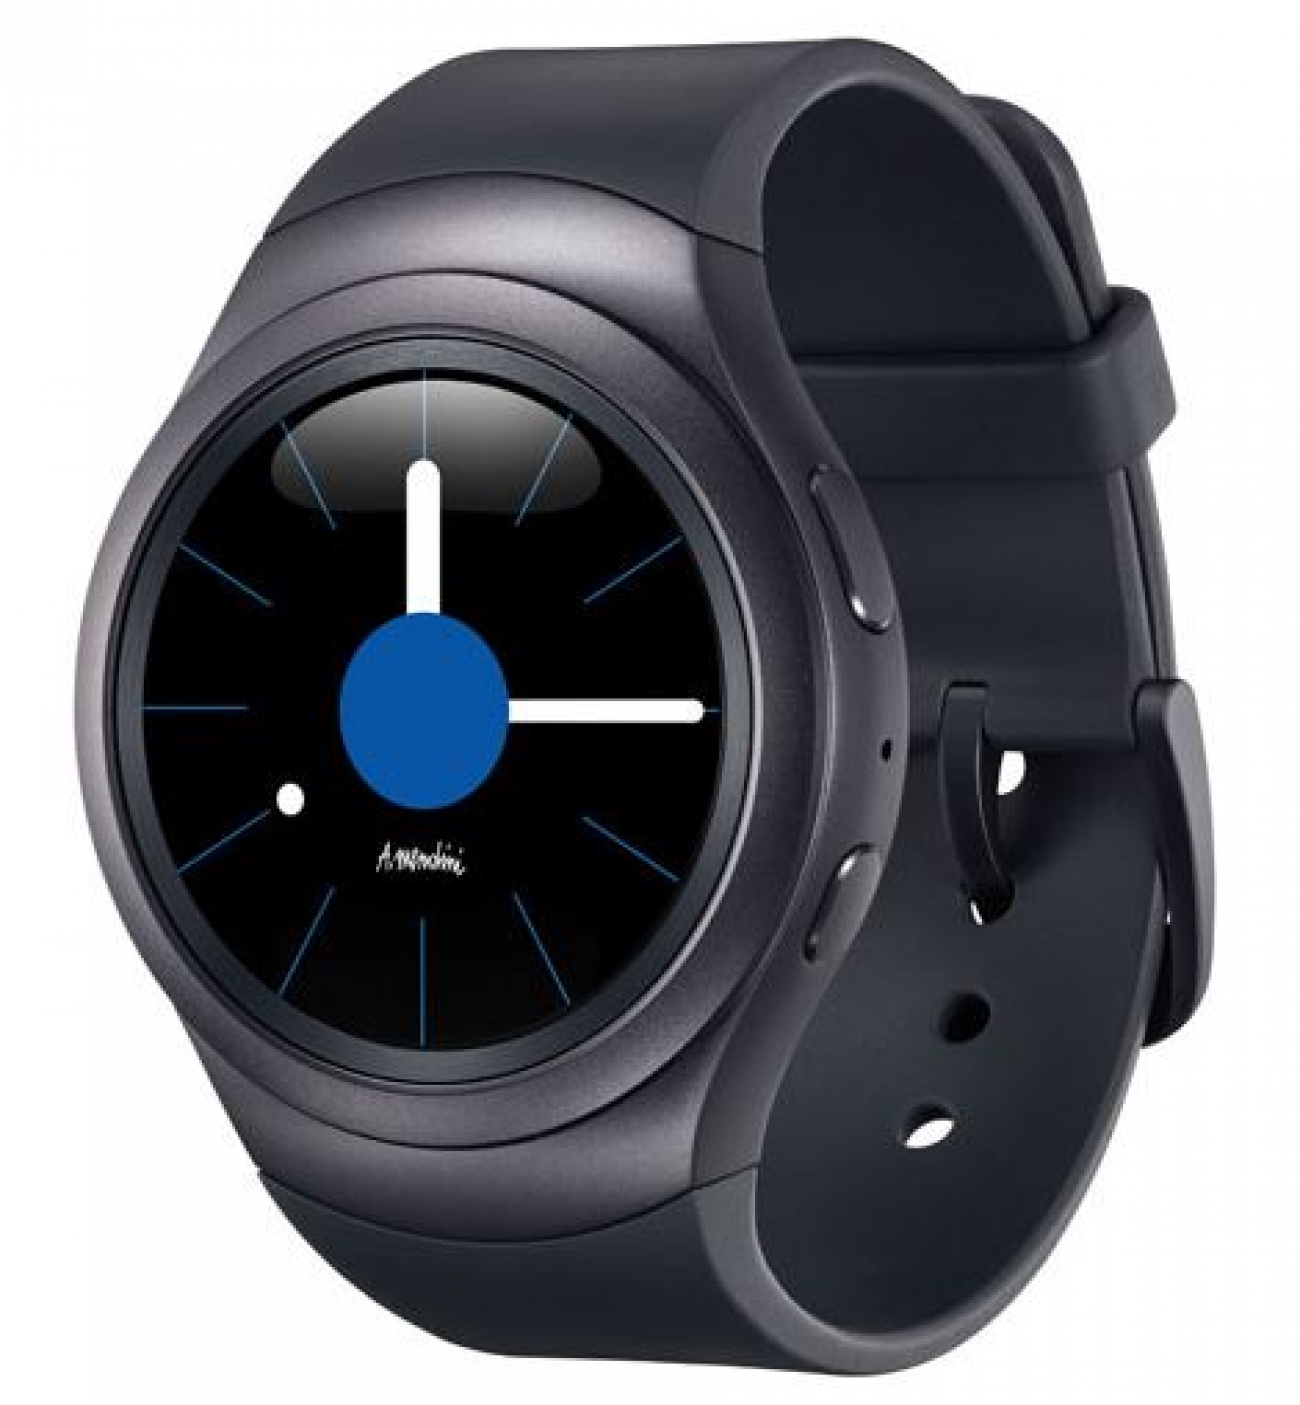 Samsung Gear S2 Smartwatch with Heart Rate Monitor